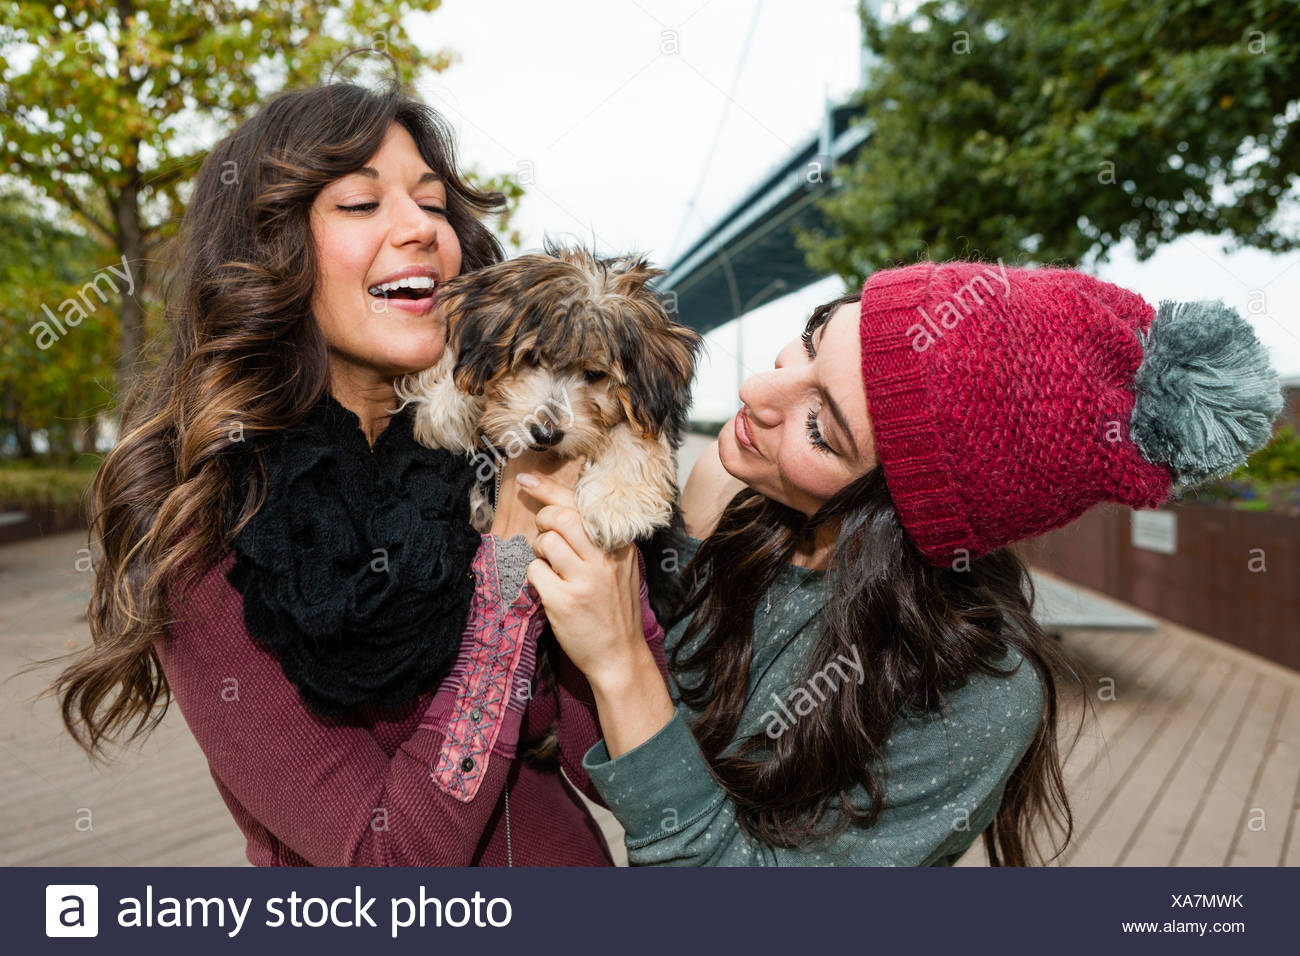 Friends holding pet dog for photograph - Stock Image